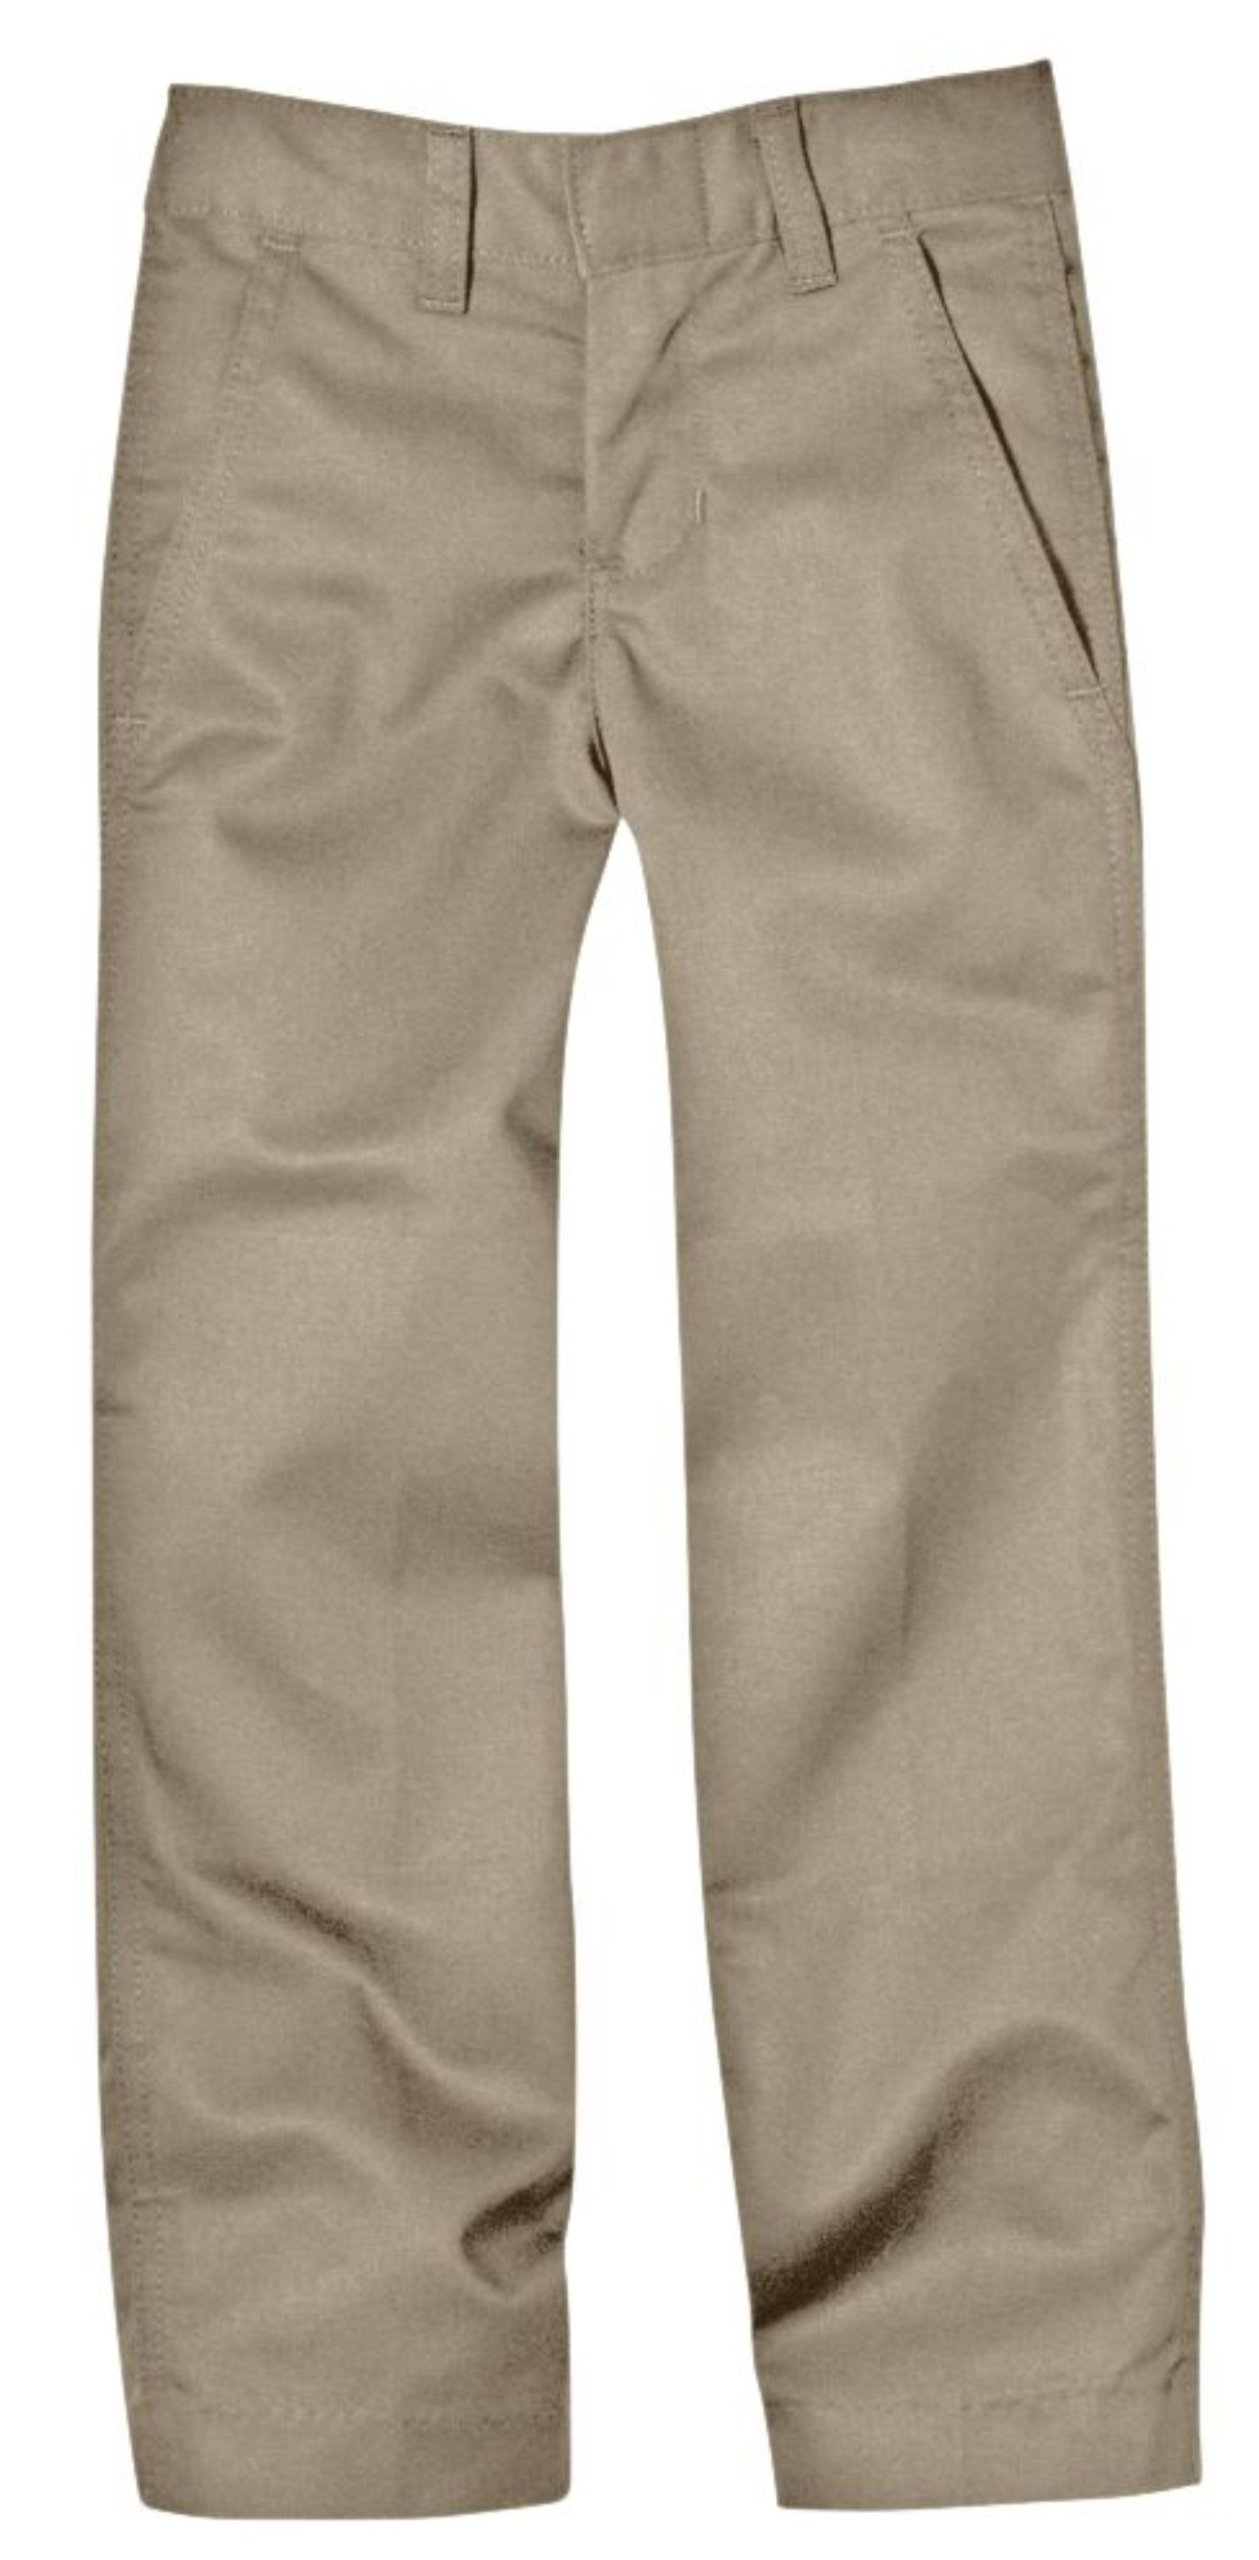 Dickies Little Boys' Uniform Flex Waist Flat Front Pant, Khaki, 7